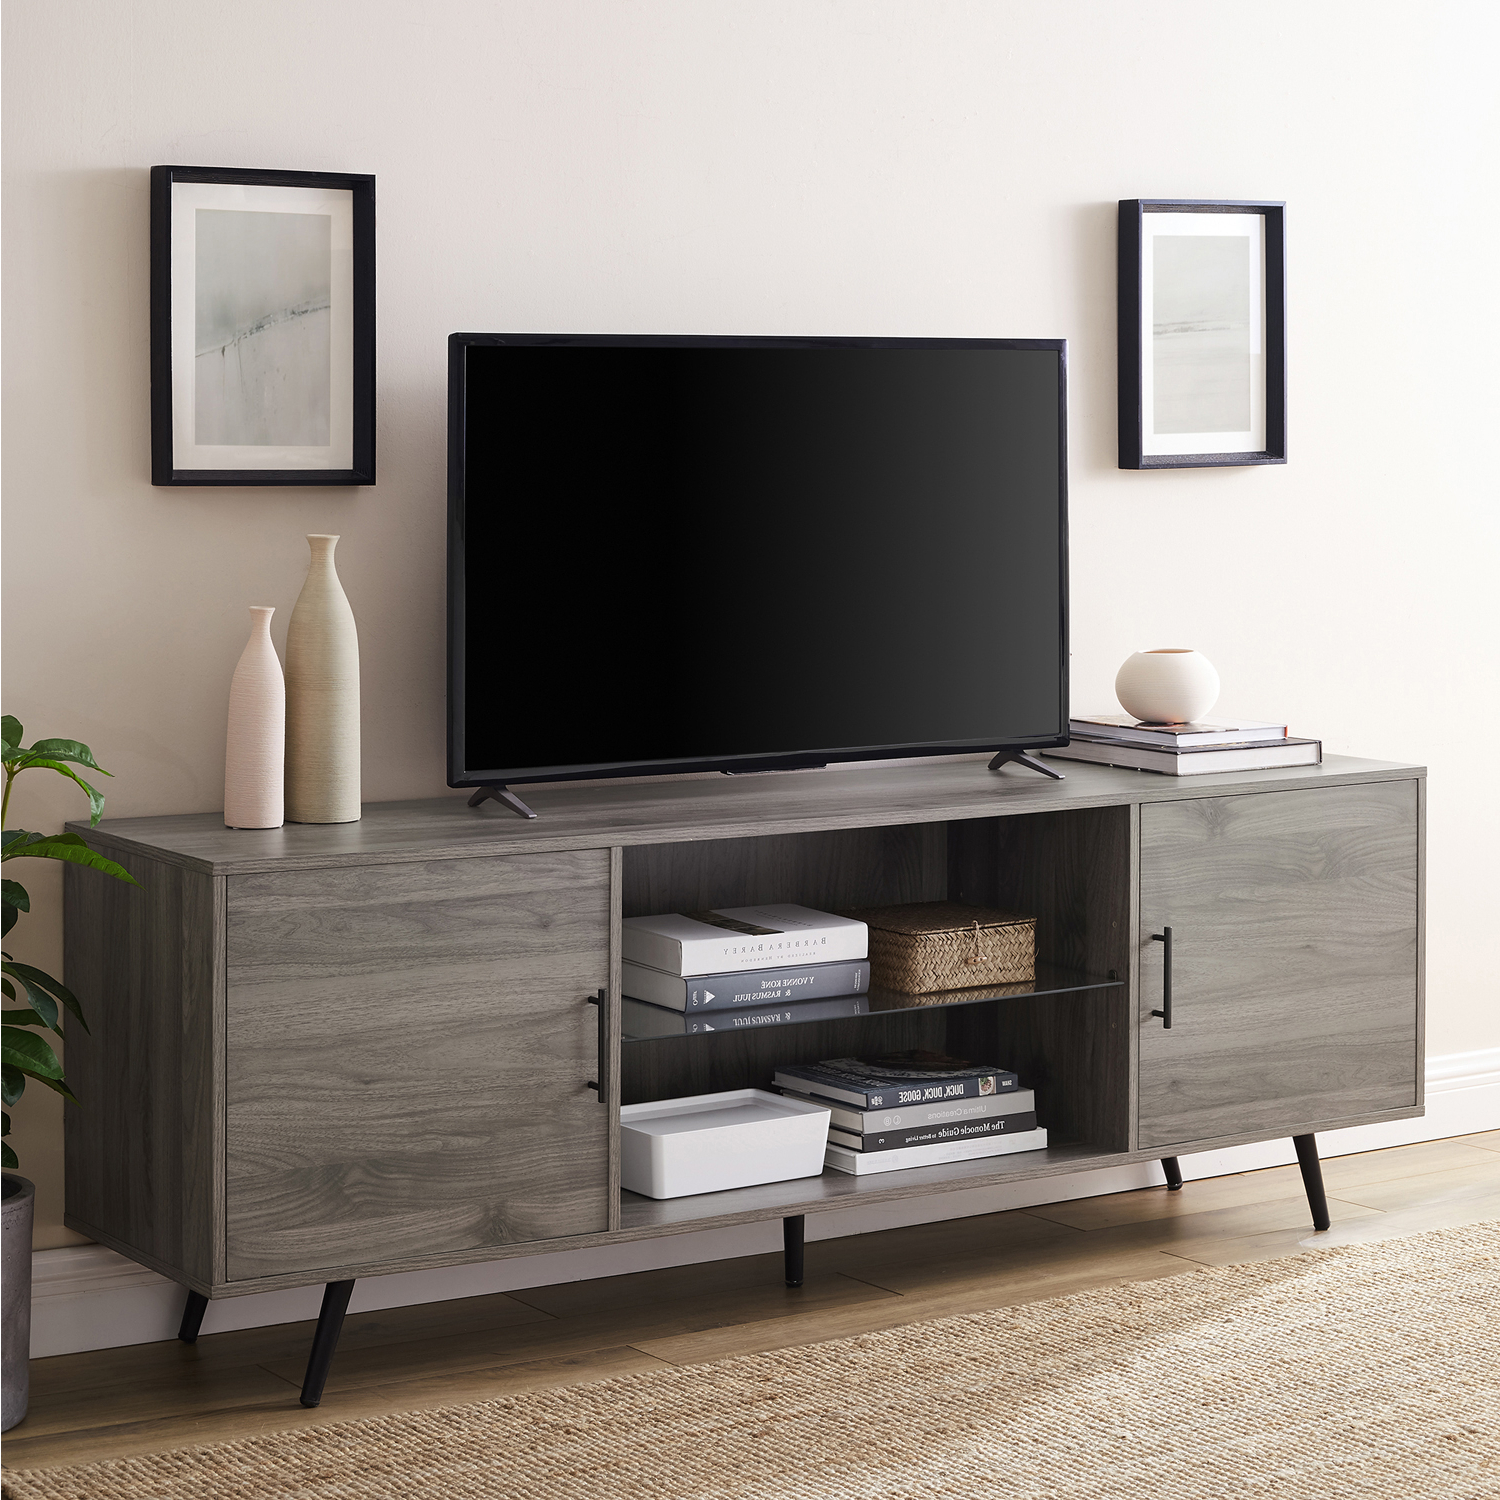 Wide Tv Stand With Glass Shelf – Pier1 Inside Most Popular Indi Wide Tv Stands (View 8 of 25)